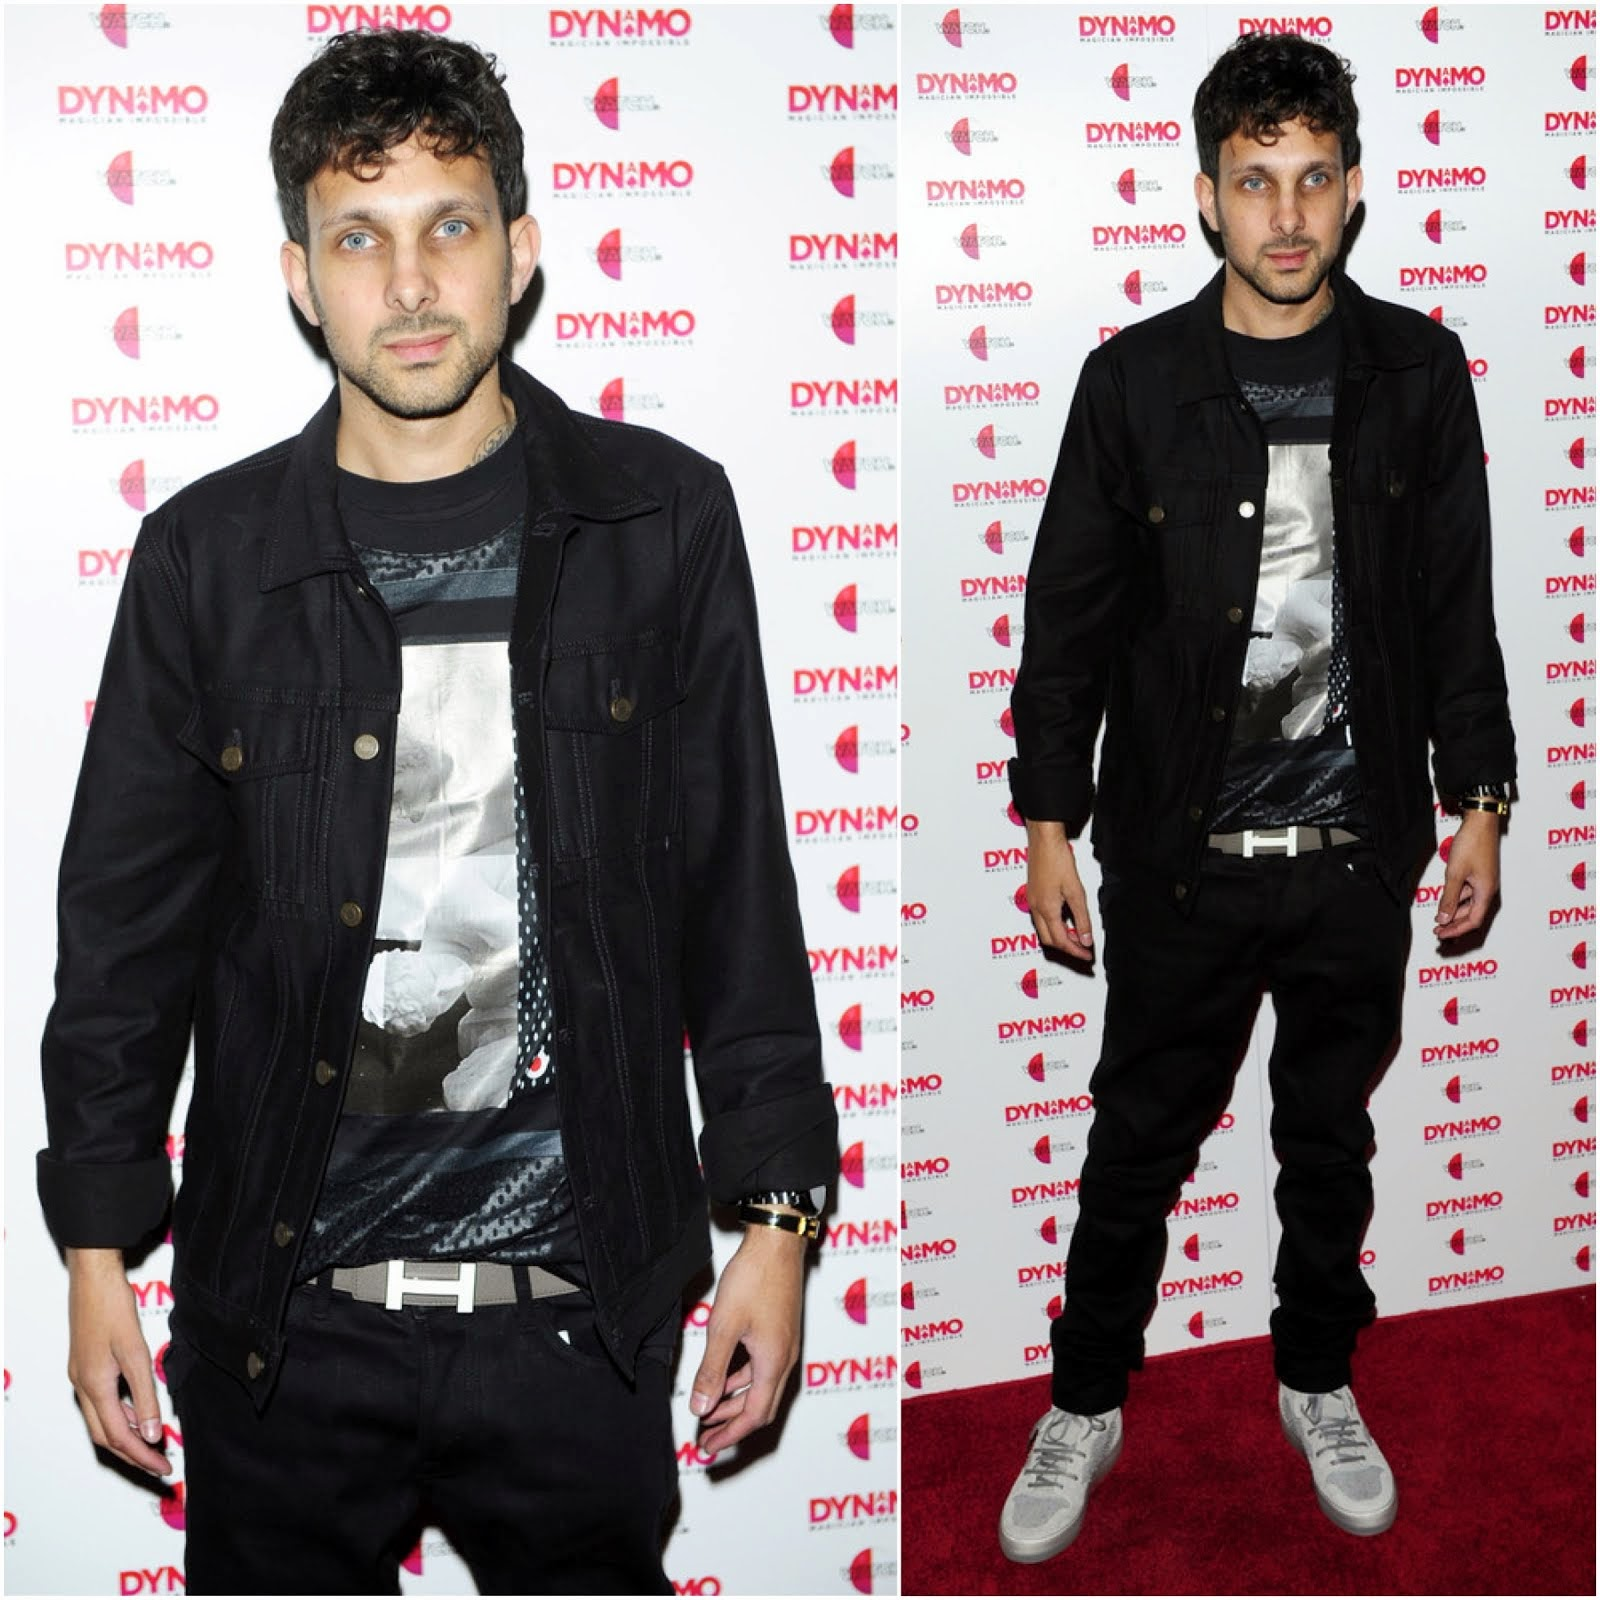 00O00 Menswear Blog: Dynamo in Givenchy - 'Dynamo: Magician Impossible' series 3 launch party, London